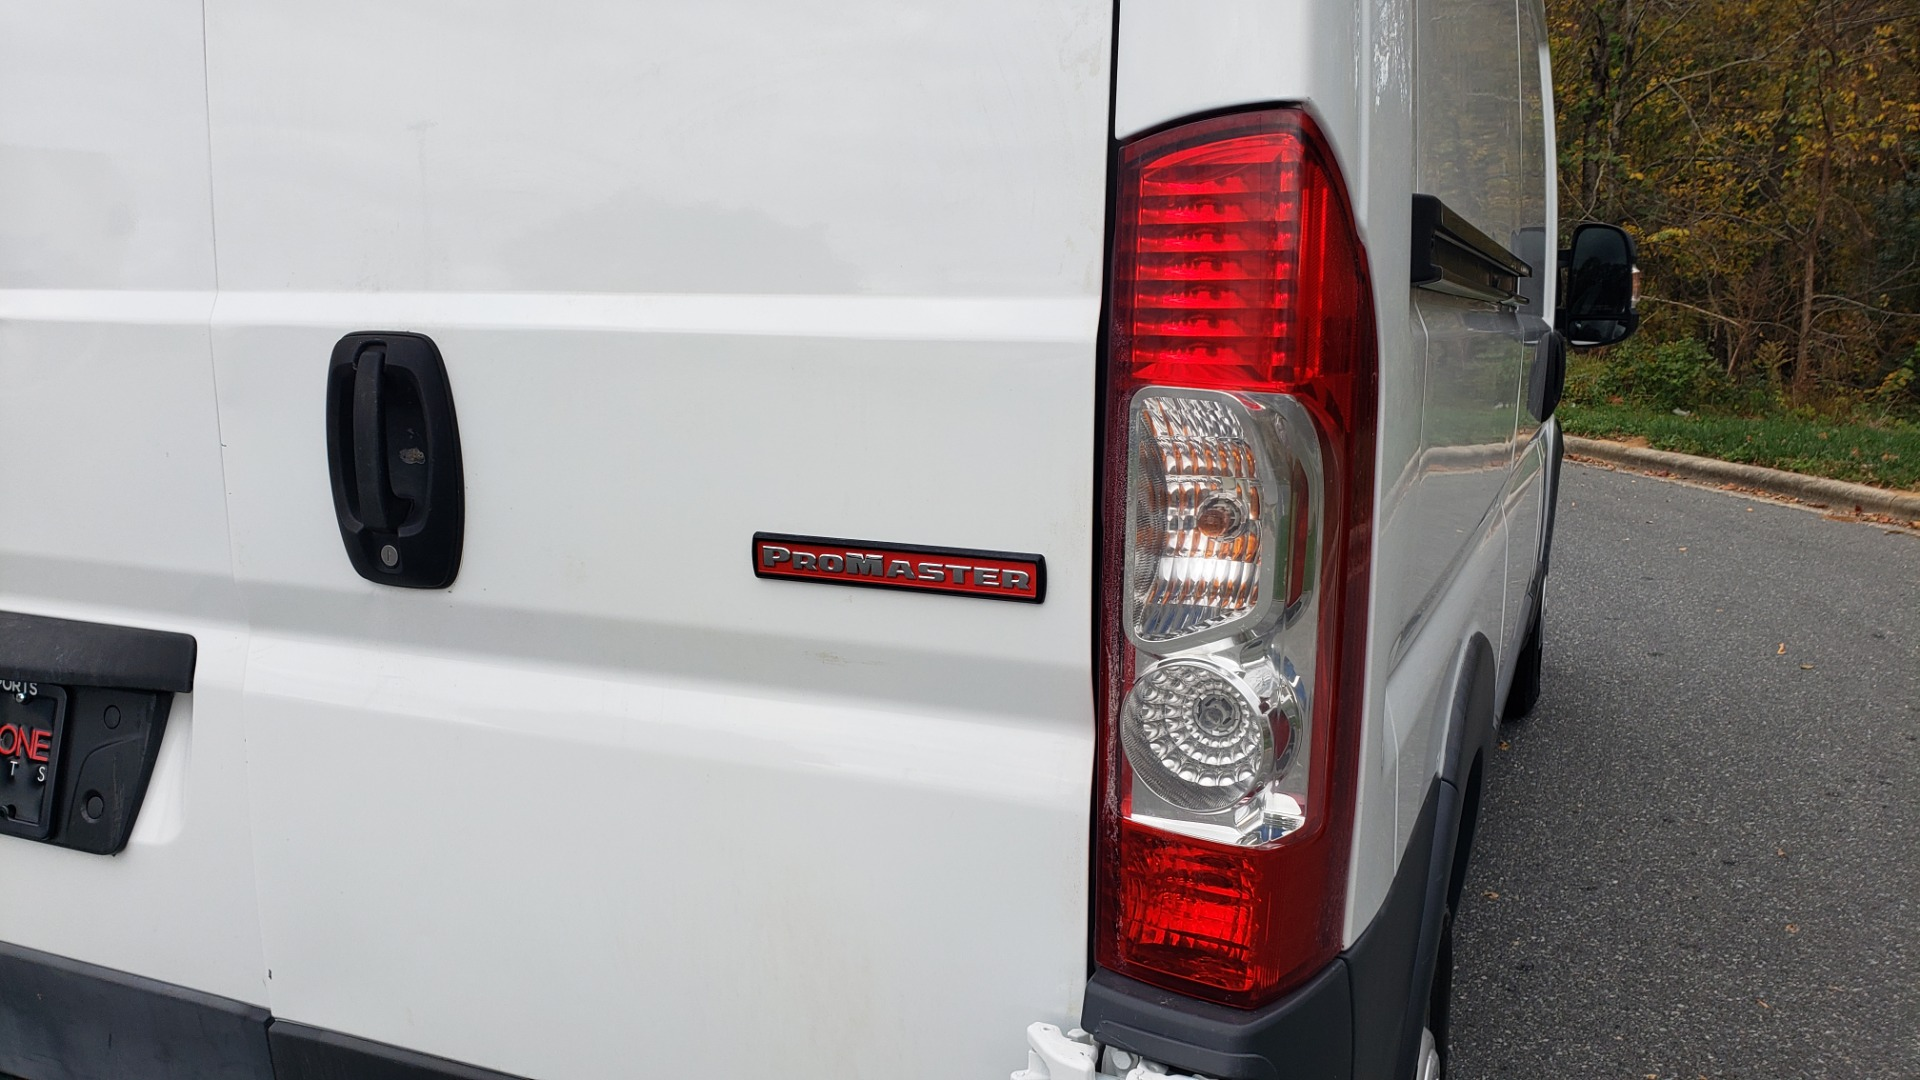 Used 2015 Ram PROMASTER CARGO VAN 136-INCH WB / LOW ROOF / LADDER RACK / INSIDE RACKS for sale $16,995 at Formula Imports in Charlotte NC 28227 28